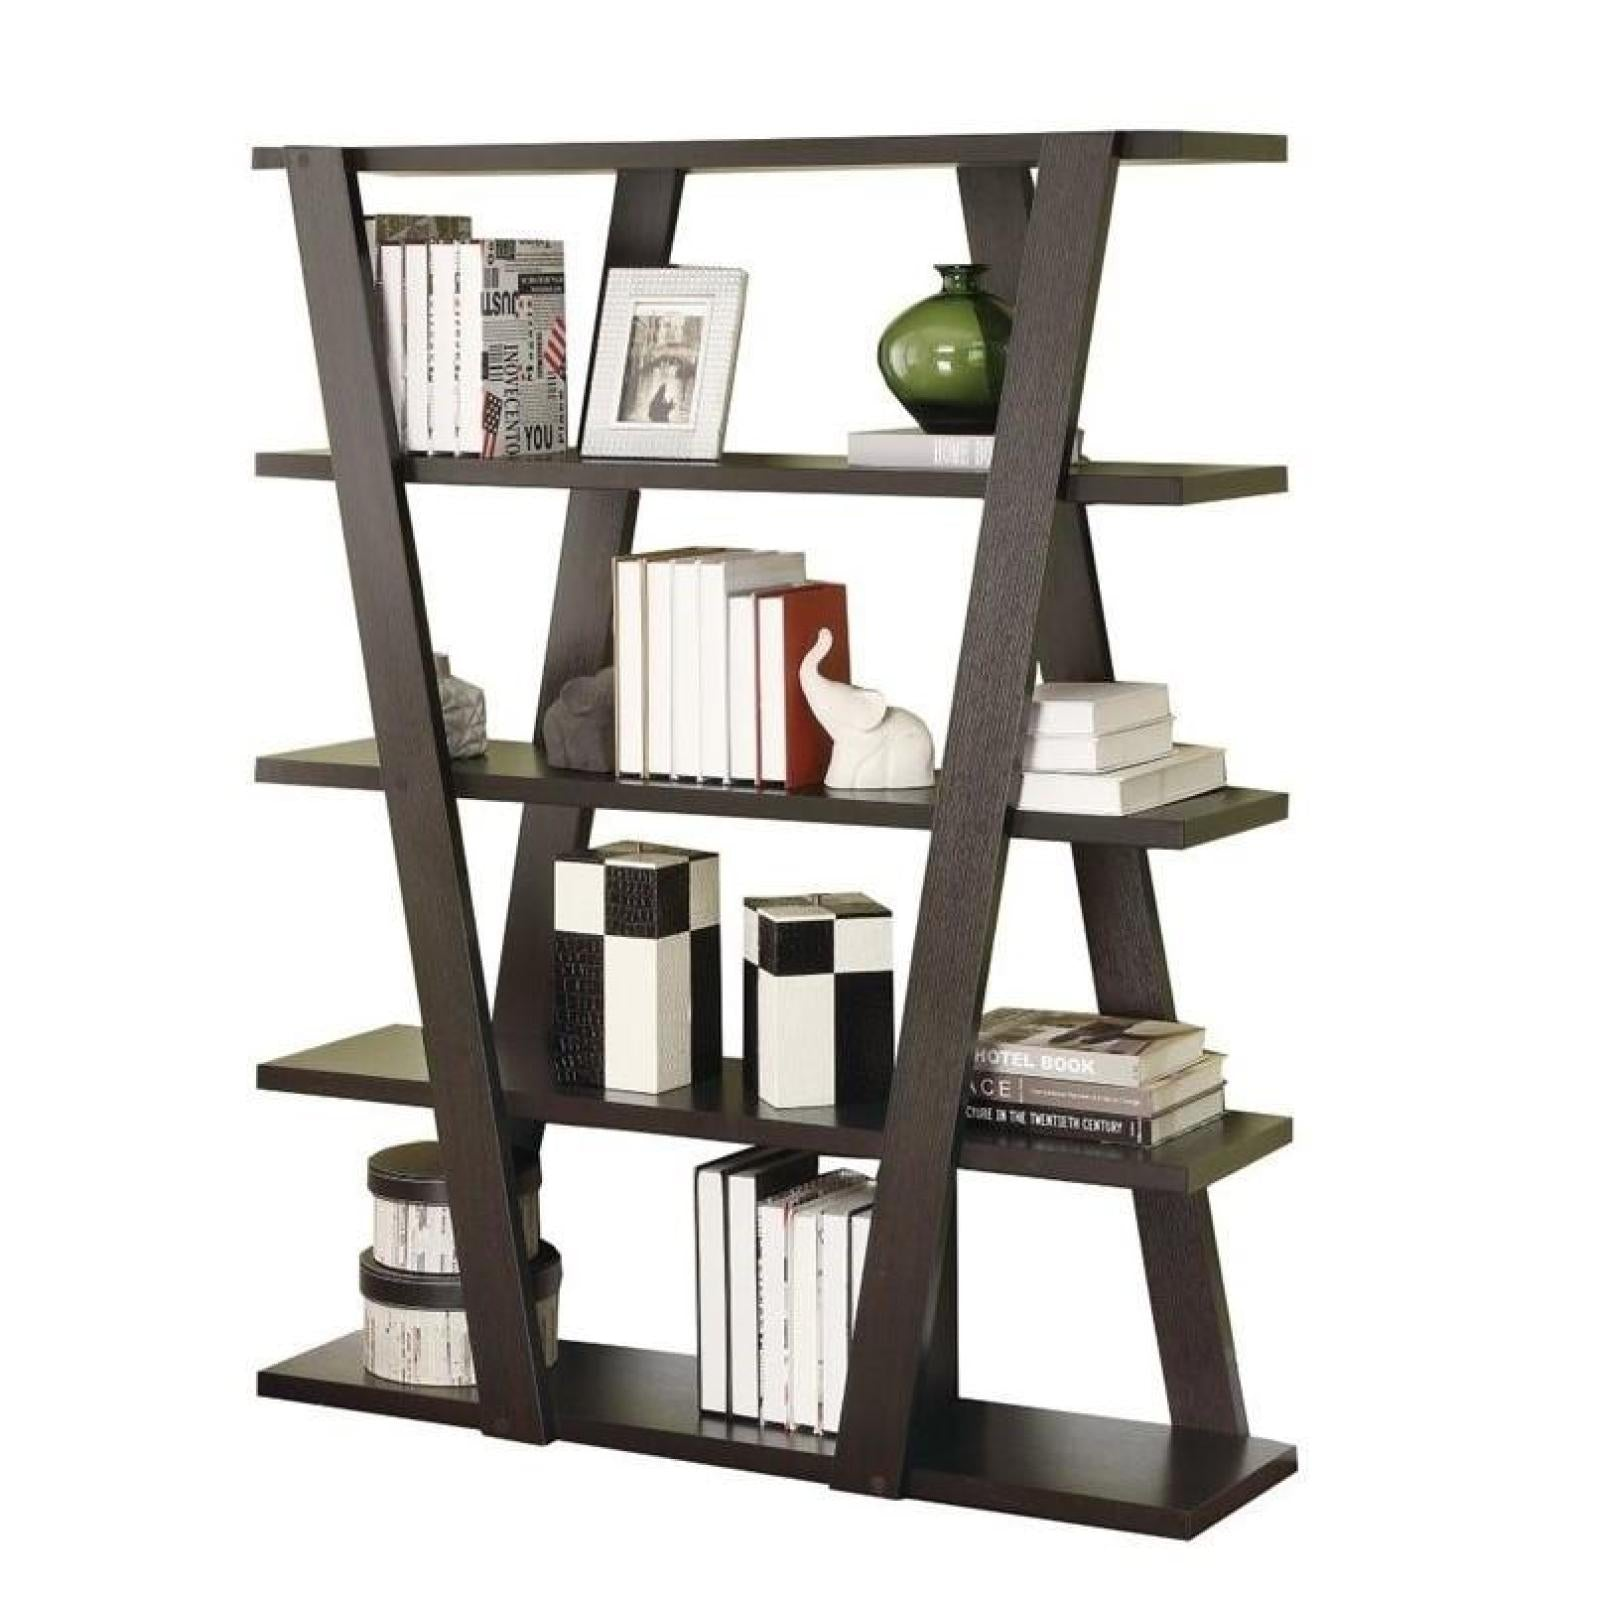 Modern Bookshelf With Inverted Supports Open Shelves Adams